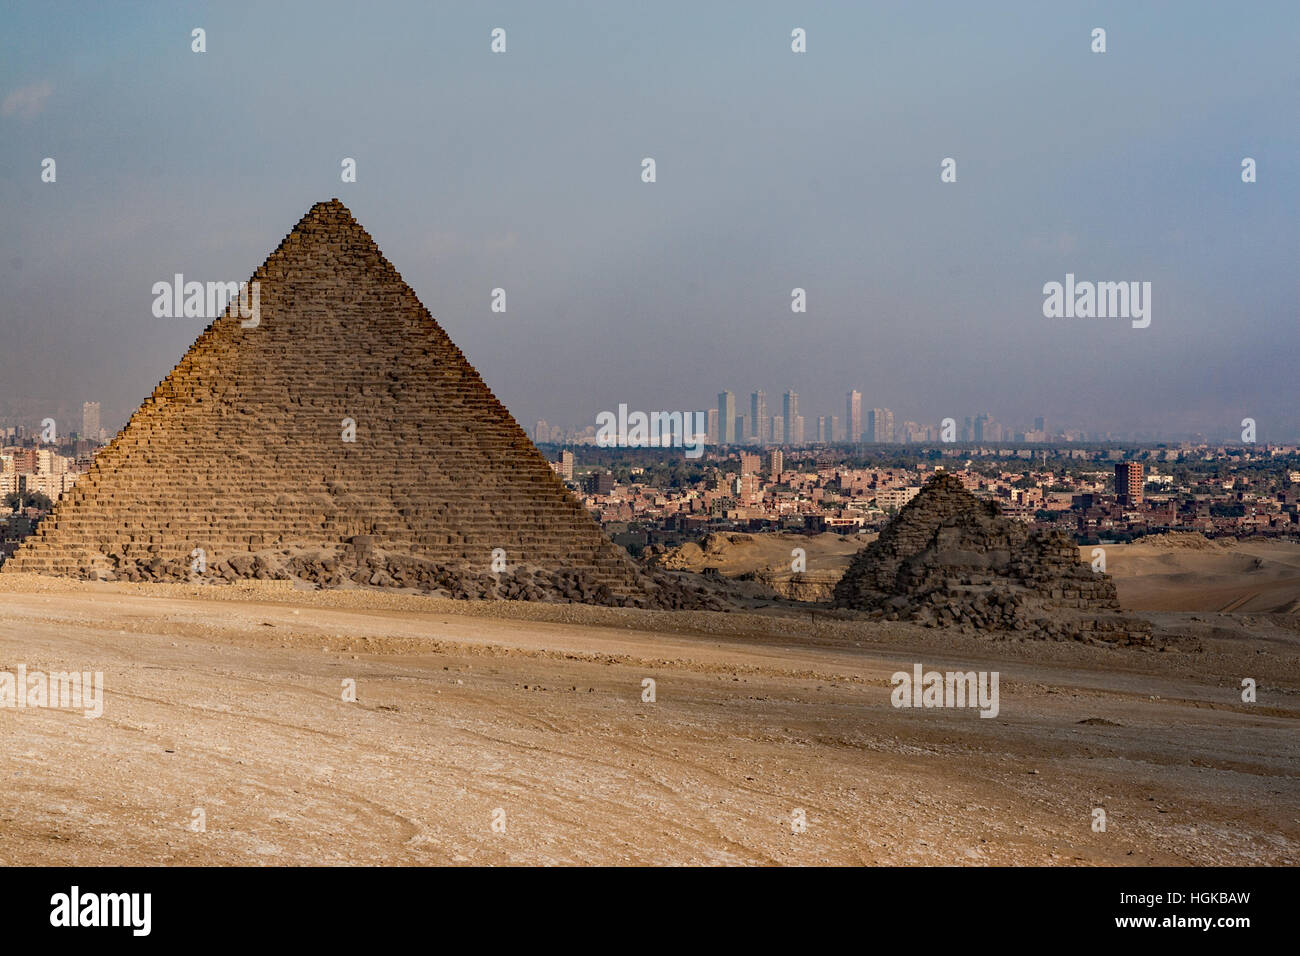 The smallest of the pyramids in Giza is in ruins but its neighbor is still intact and the city of Cairo is in the - Stock Image